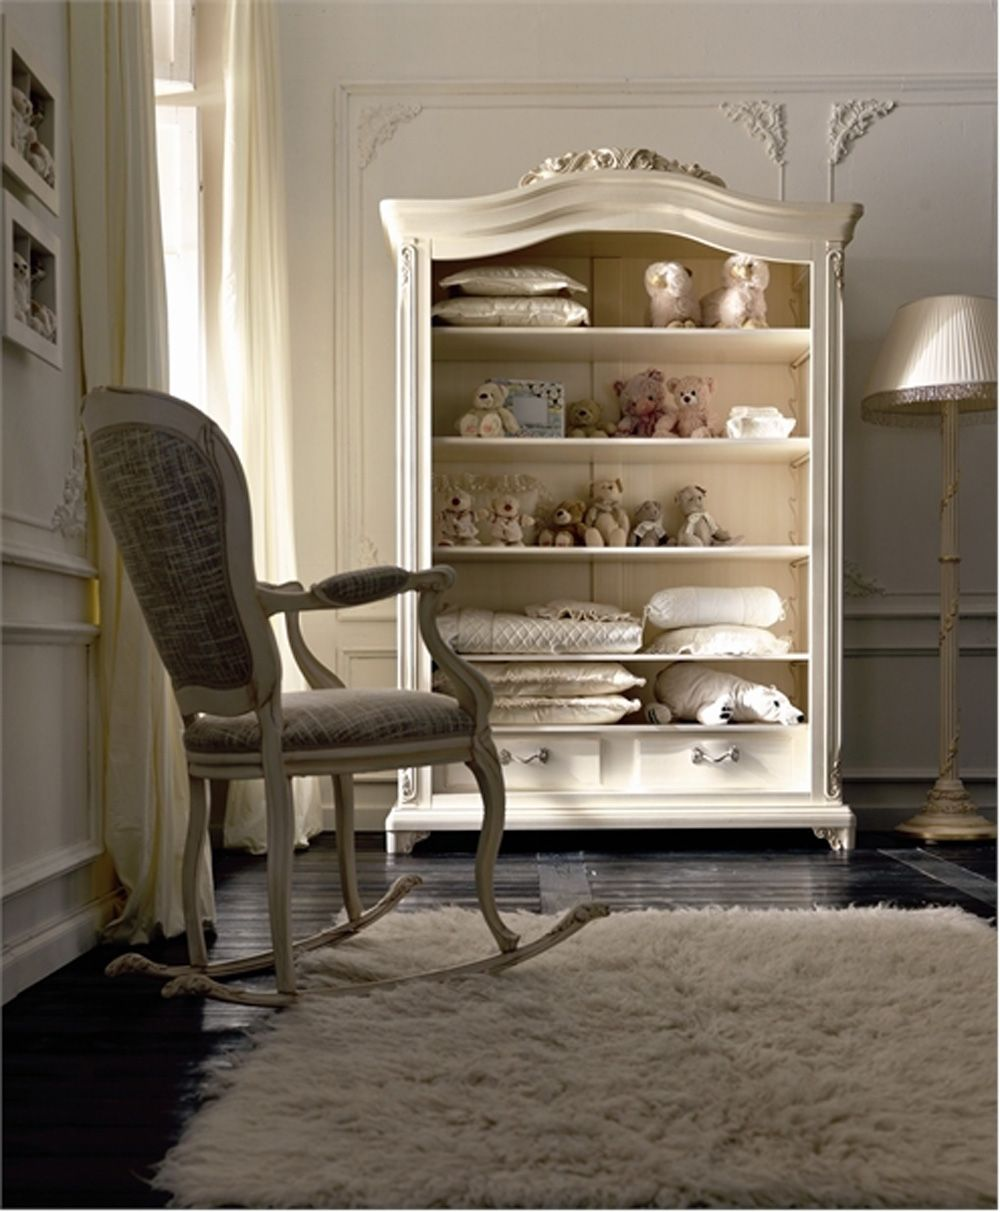 Nursery Storage In French Country Style